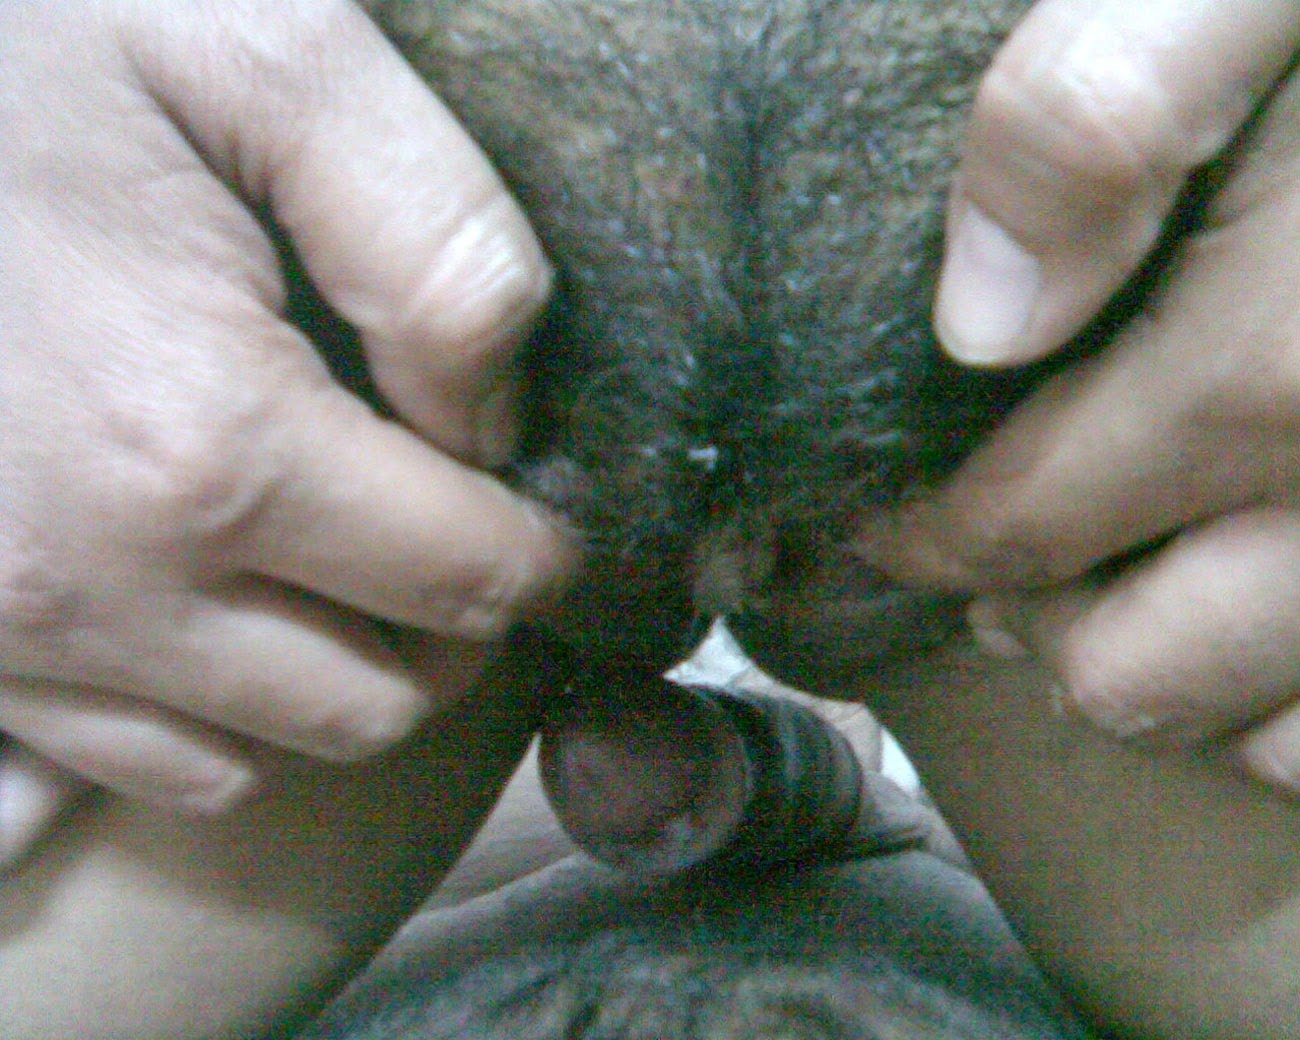 Indian bhabhi devar sex